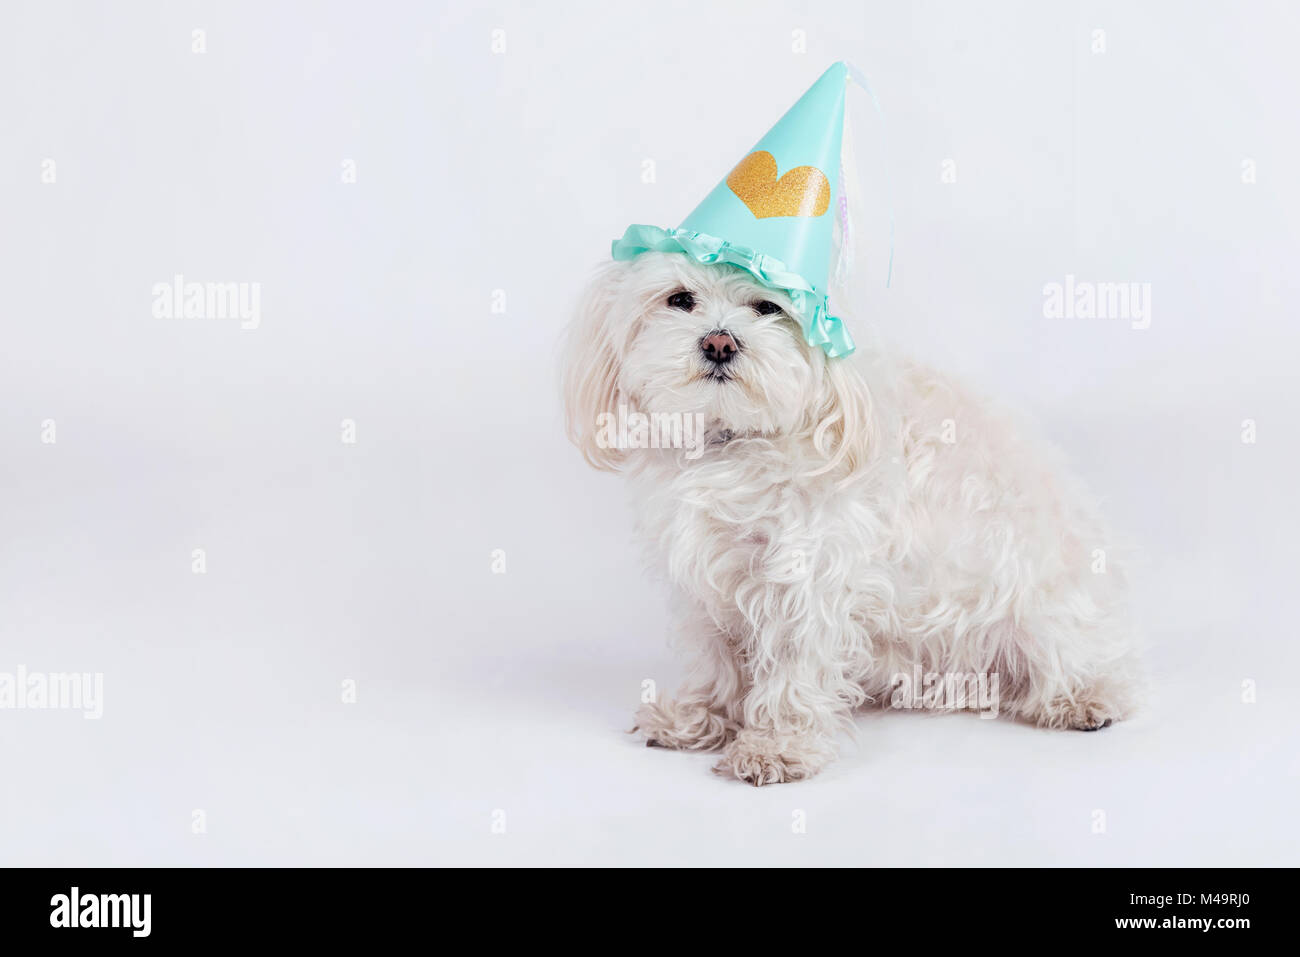 funny dog with hat - Stock Image